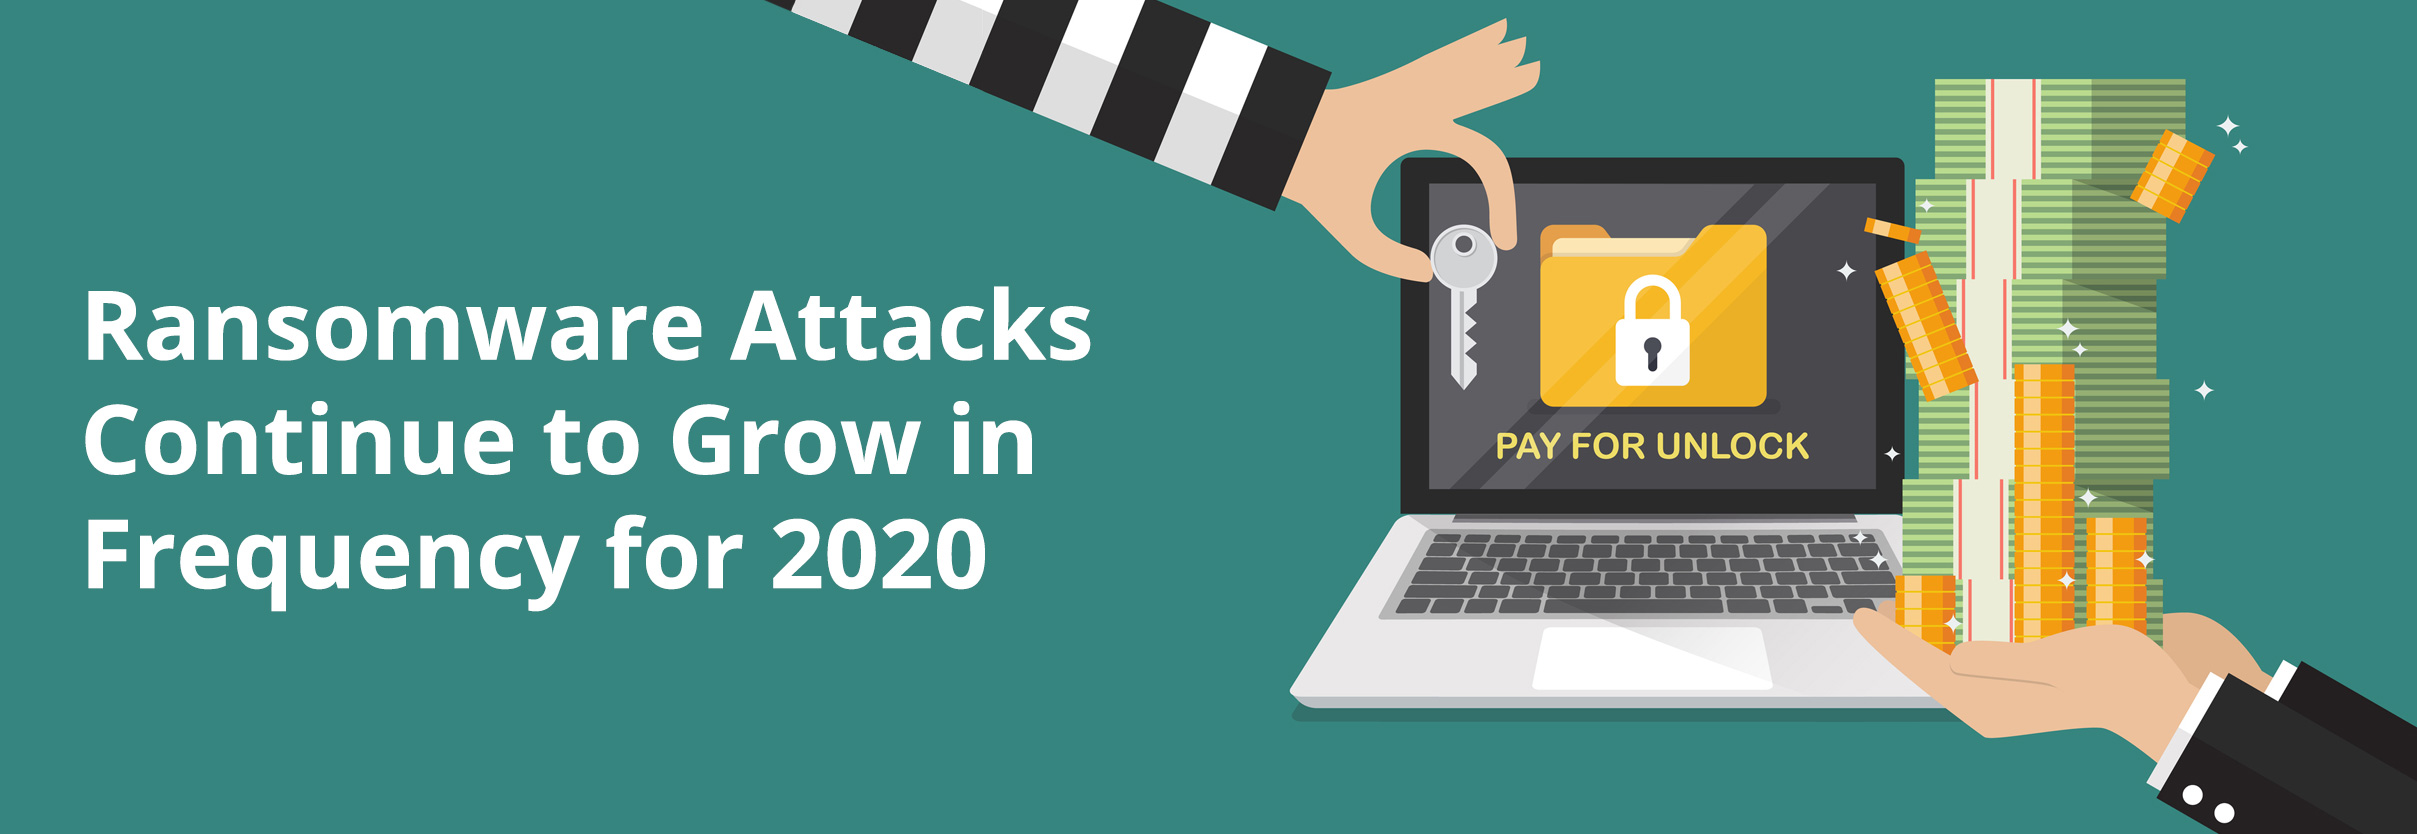 Ransomware Attacks Continue to Grow in Frequency for 2020